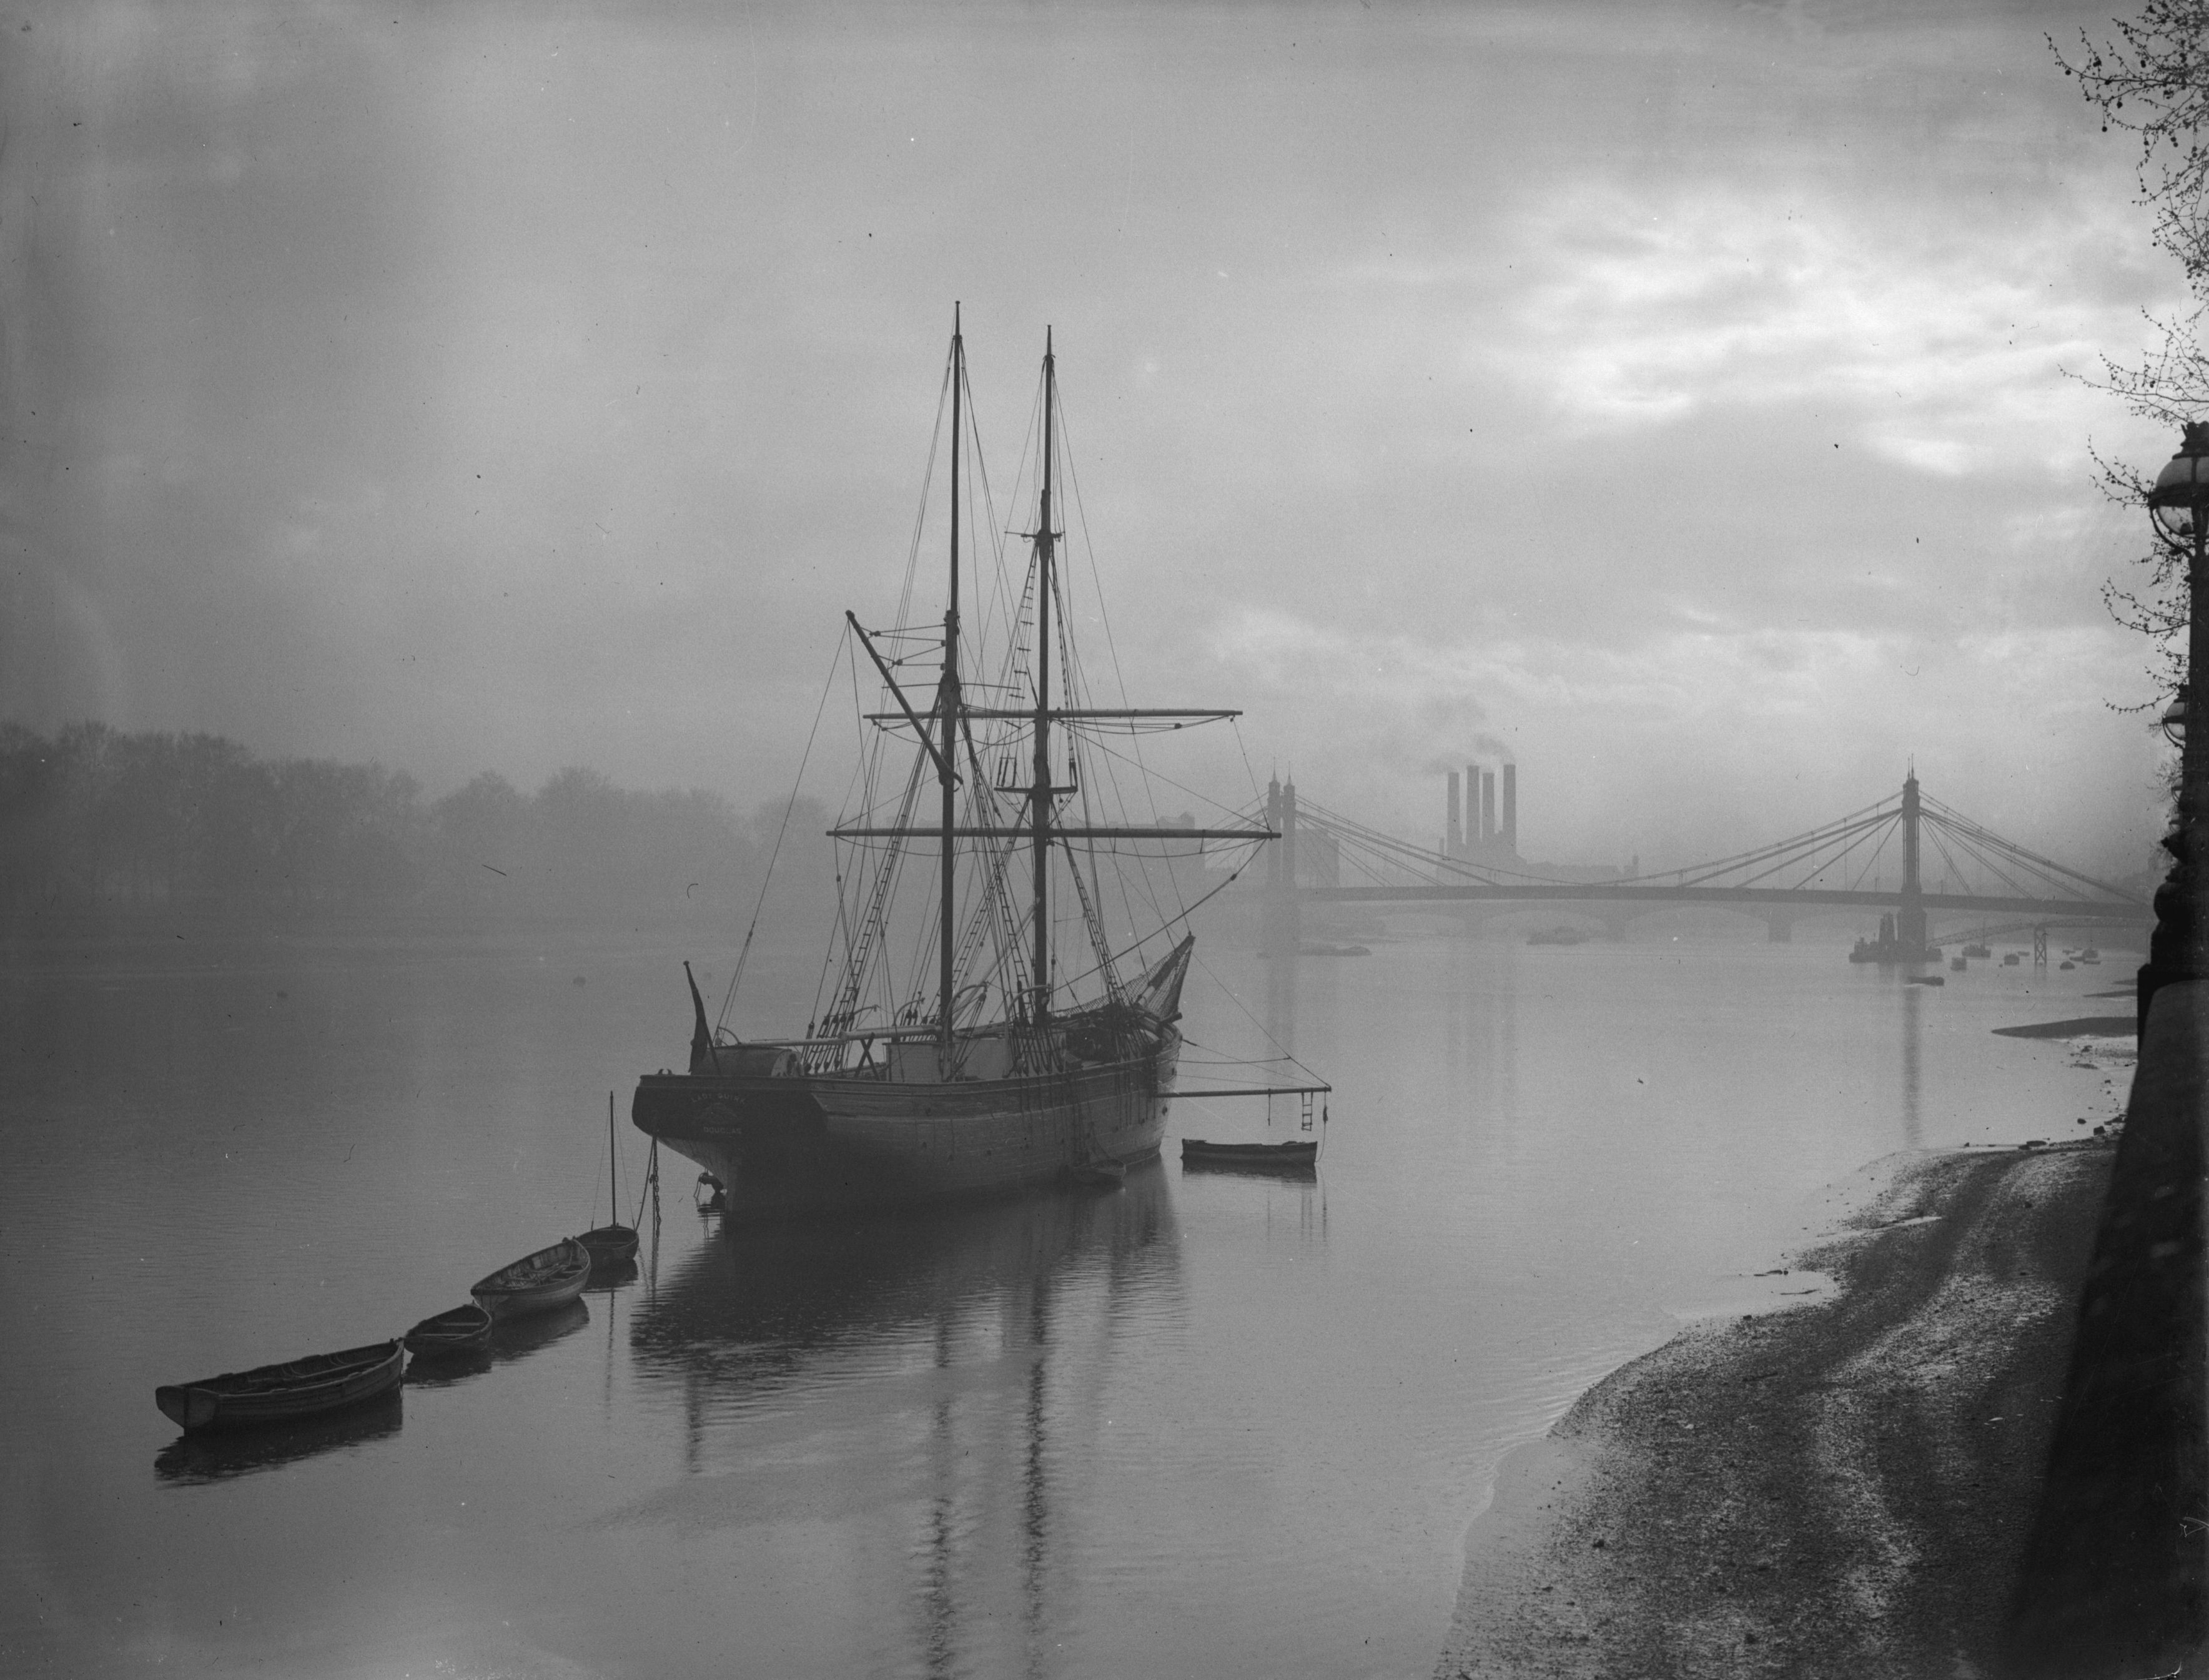 April 1934: A Navy cadet training ship on the Thames at Battersea, London with Albert bridge in the background. (Photo by Fox Photos/Getty Images)